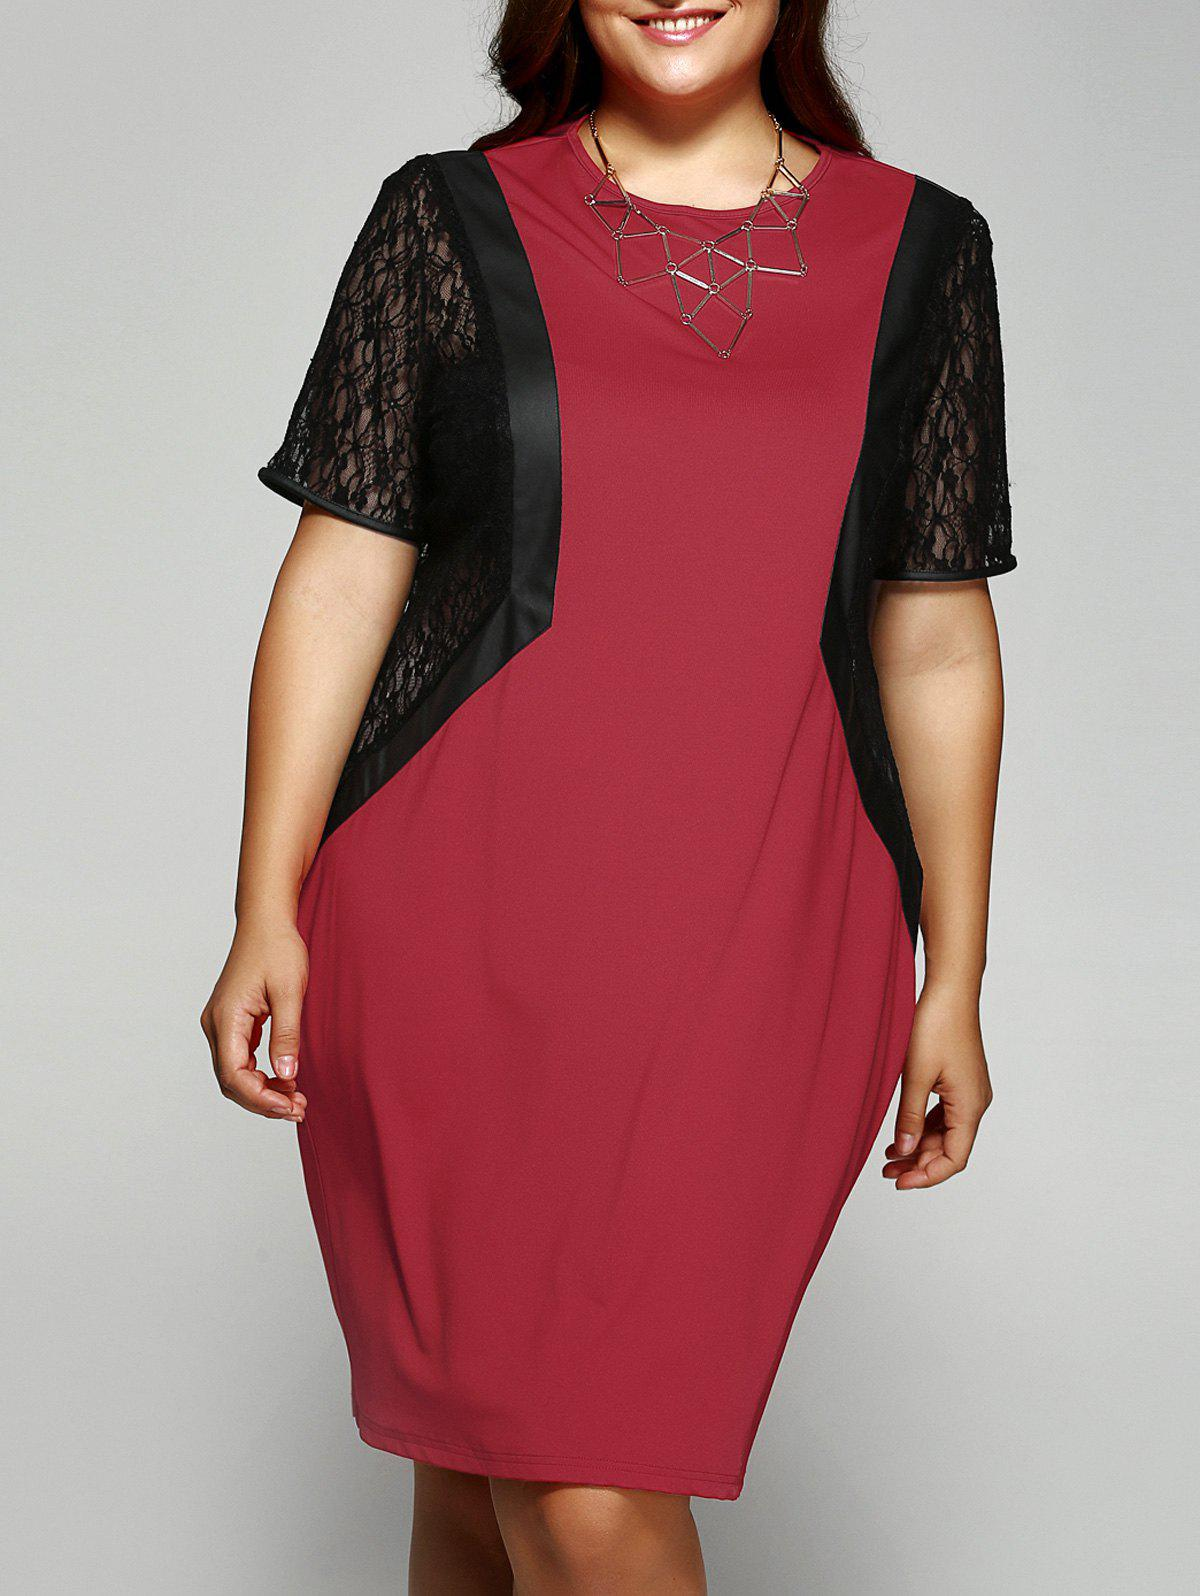 Oversized Short Sleeves Lace Splicing Skinny Dress - RED/BLACK 2XL